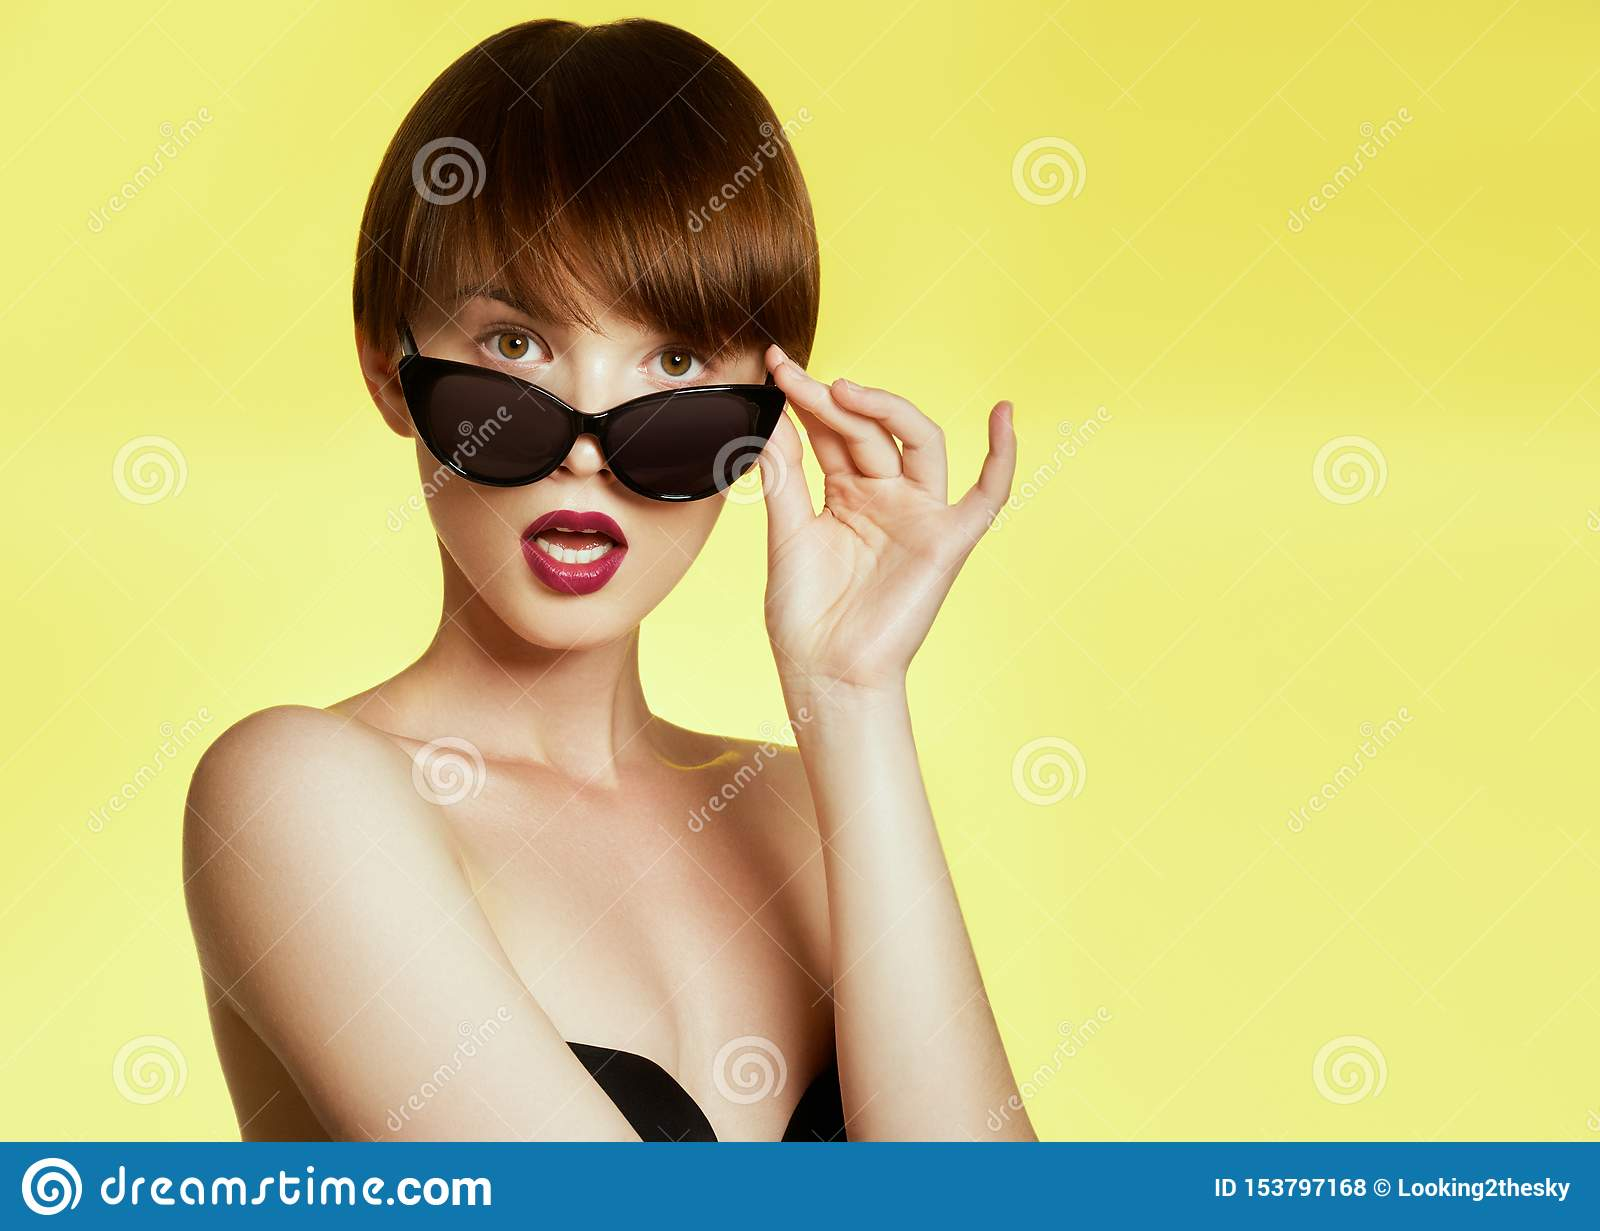 Beauty surprised fashion funny model girl wearing sunglasses. Young girl. Expressing positive emotions, smile. Beautiful